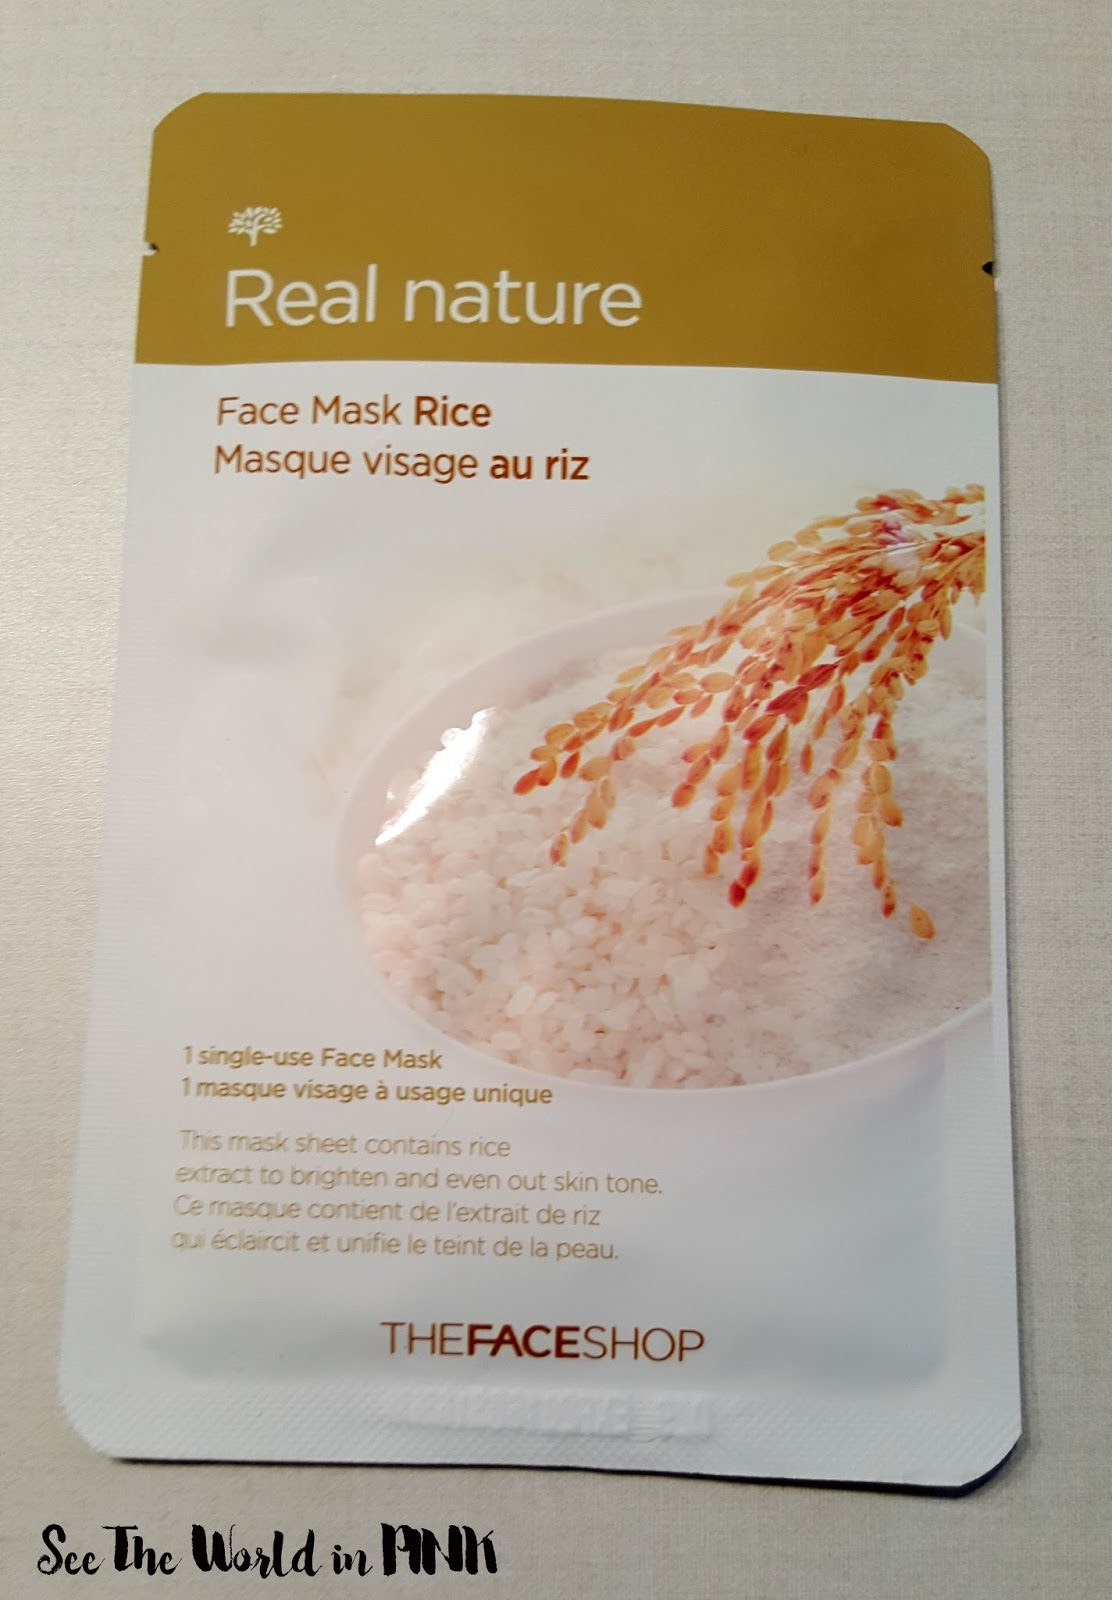 7 Seriously Good Face Masks to Shop at SephoraToday 7 Seriously Good Face Masks to Shop at SephoraToday new photo